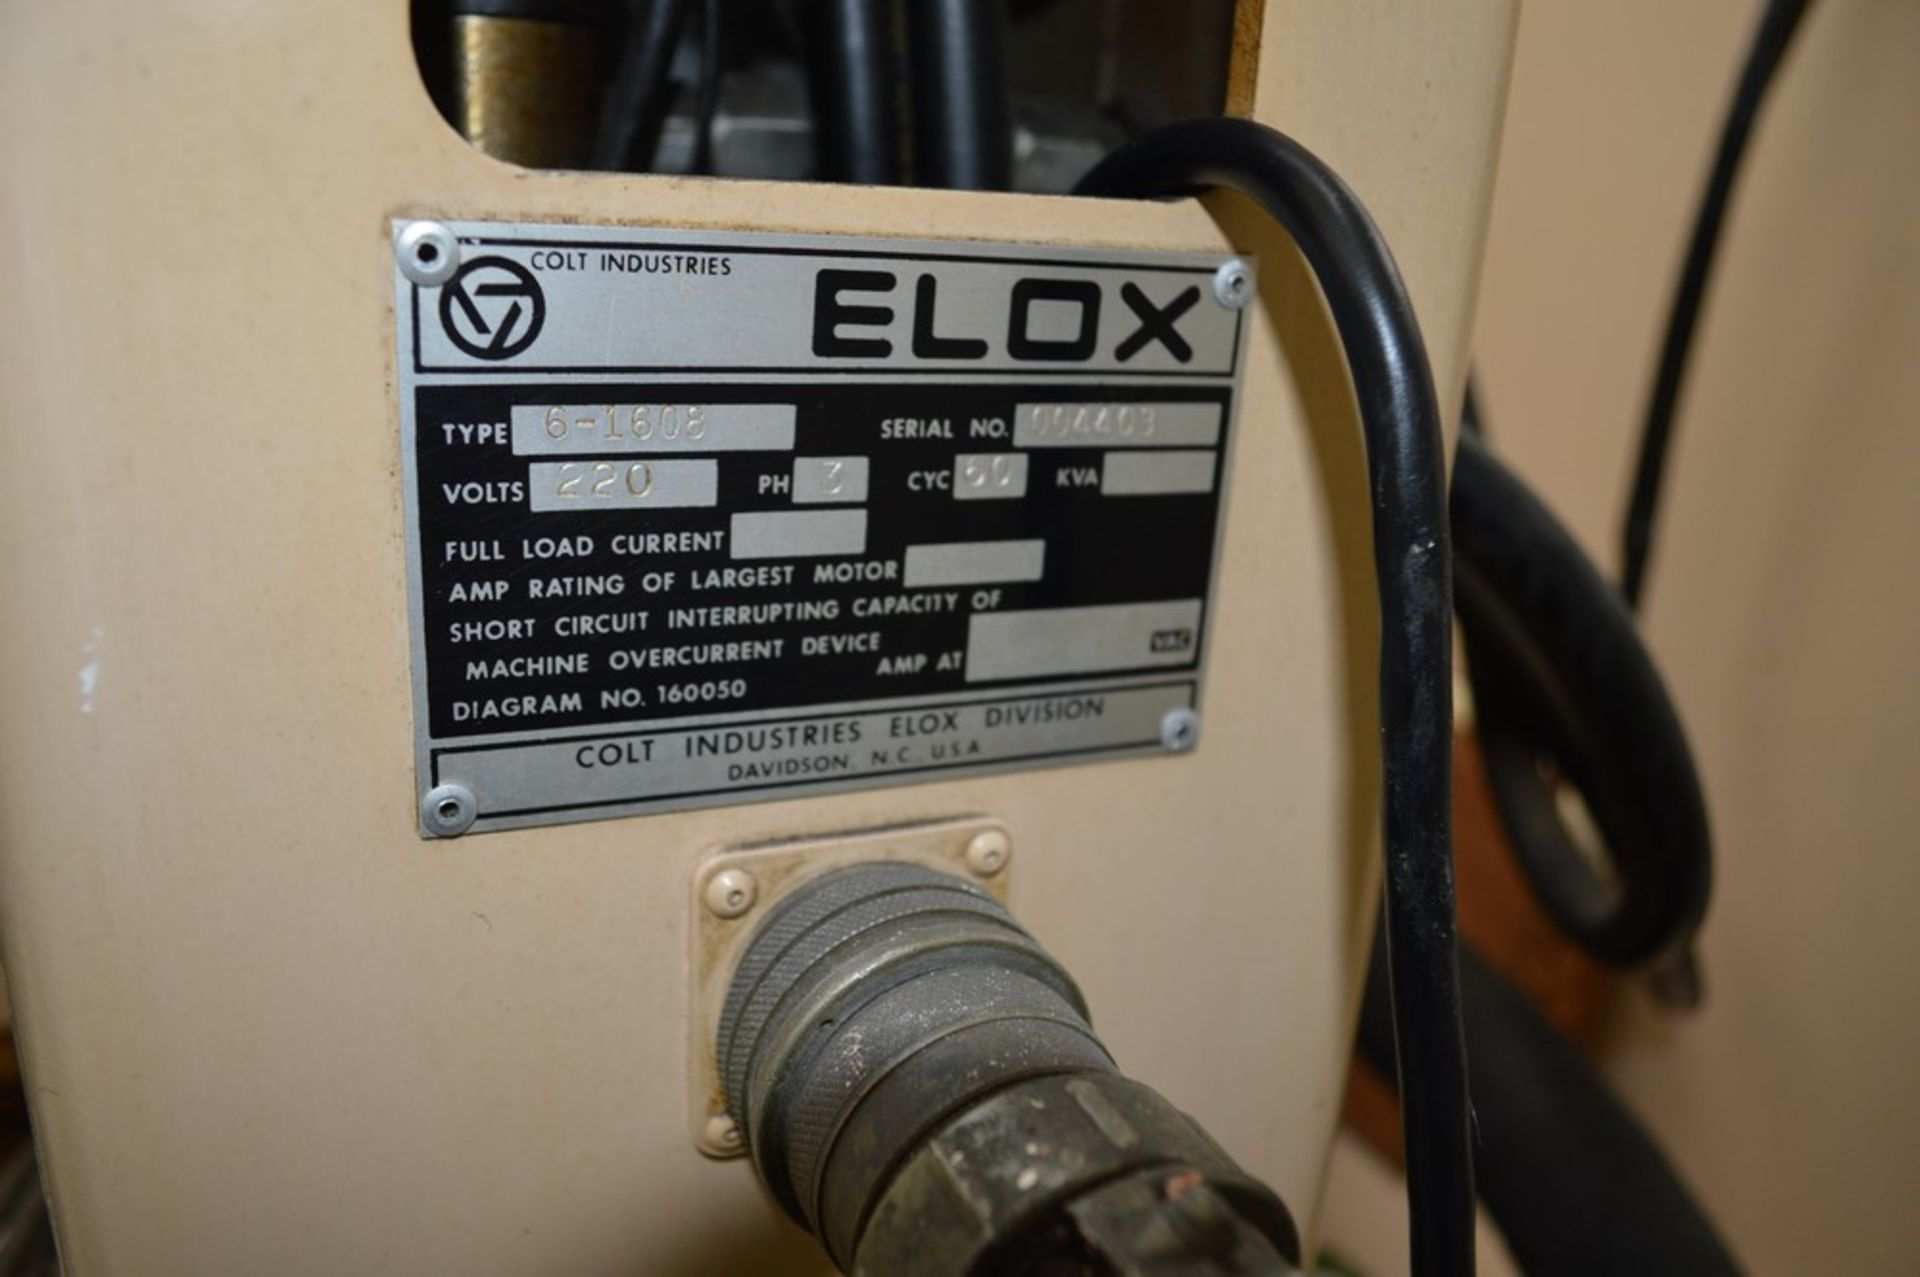 Elox small hole Plunge EDM Systems submersible EDM, Analam mini wizard DRO, benchtop model, 16 x 8 - Image 6 of 8